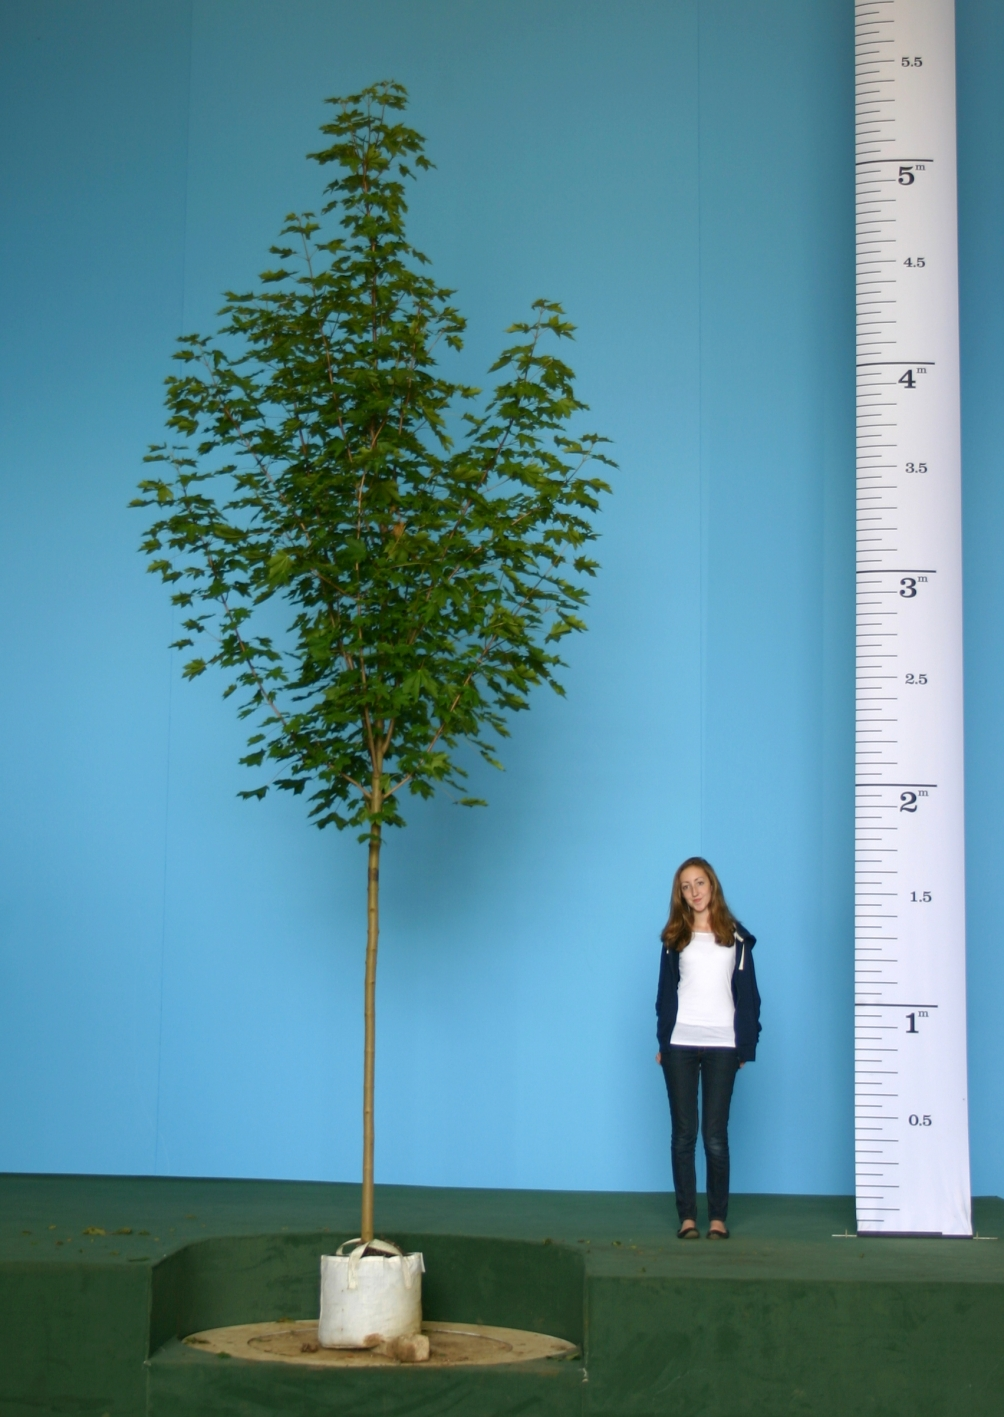 Scaled image of Acer platanoides Emerald Queen size Medium